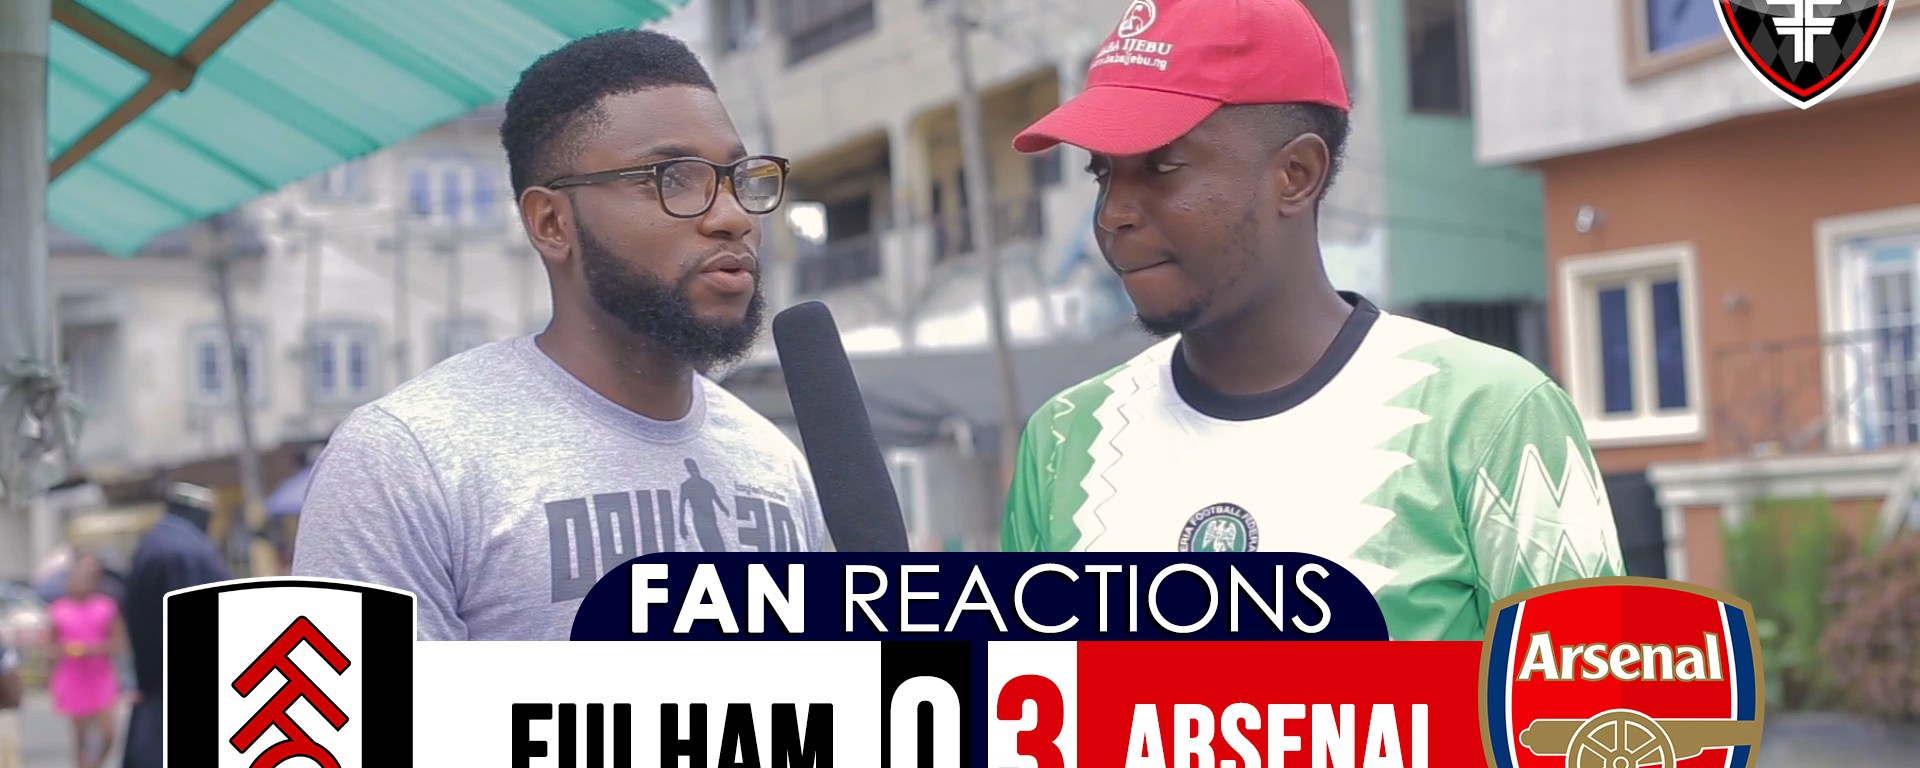 Fulham 0-3 Arsenal Fan Reactions